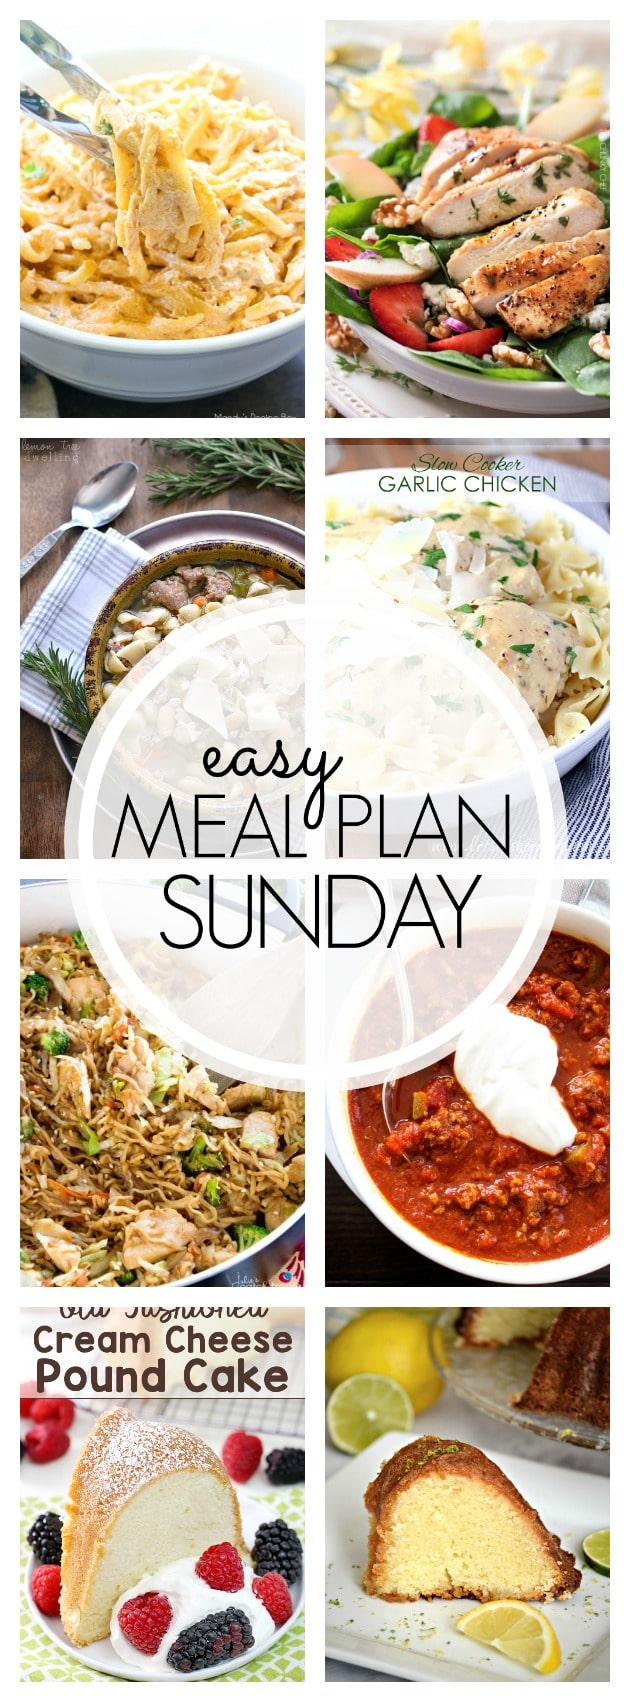 Easy Meal Plan Sunday - Week 82